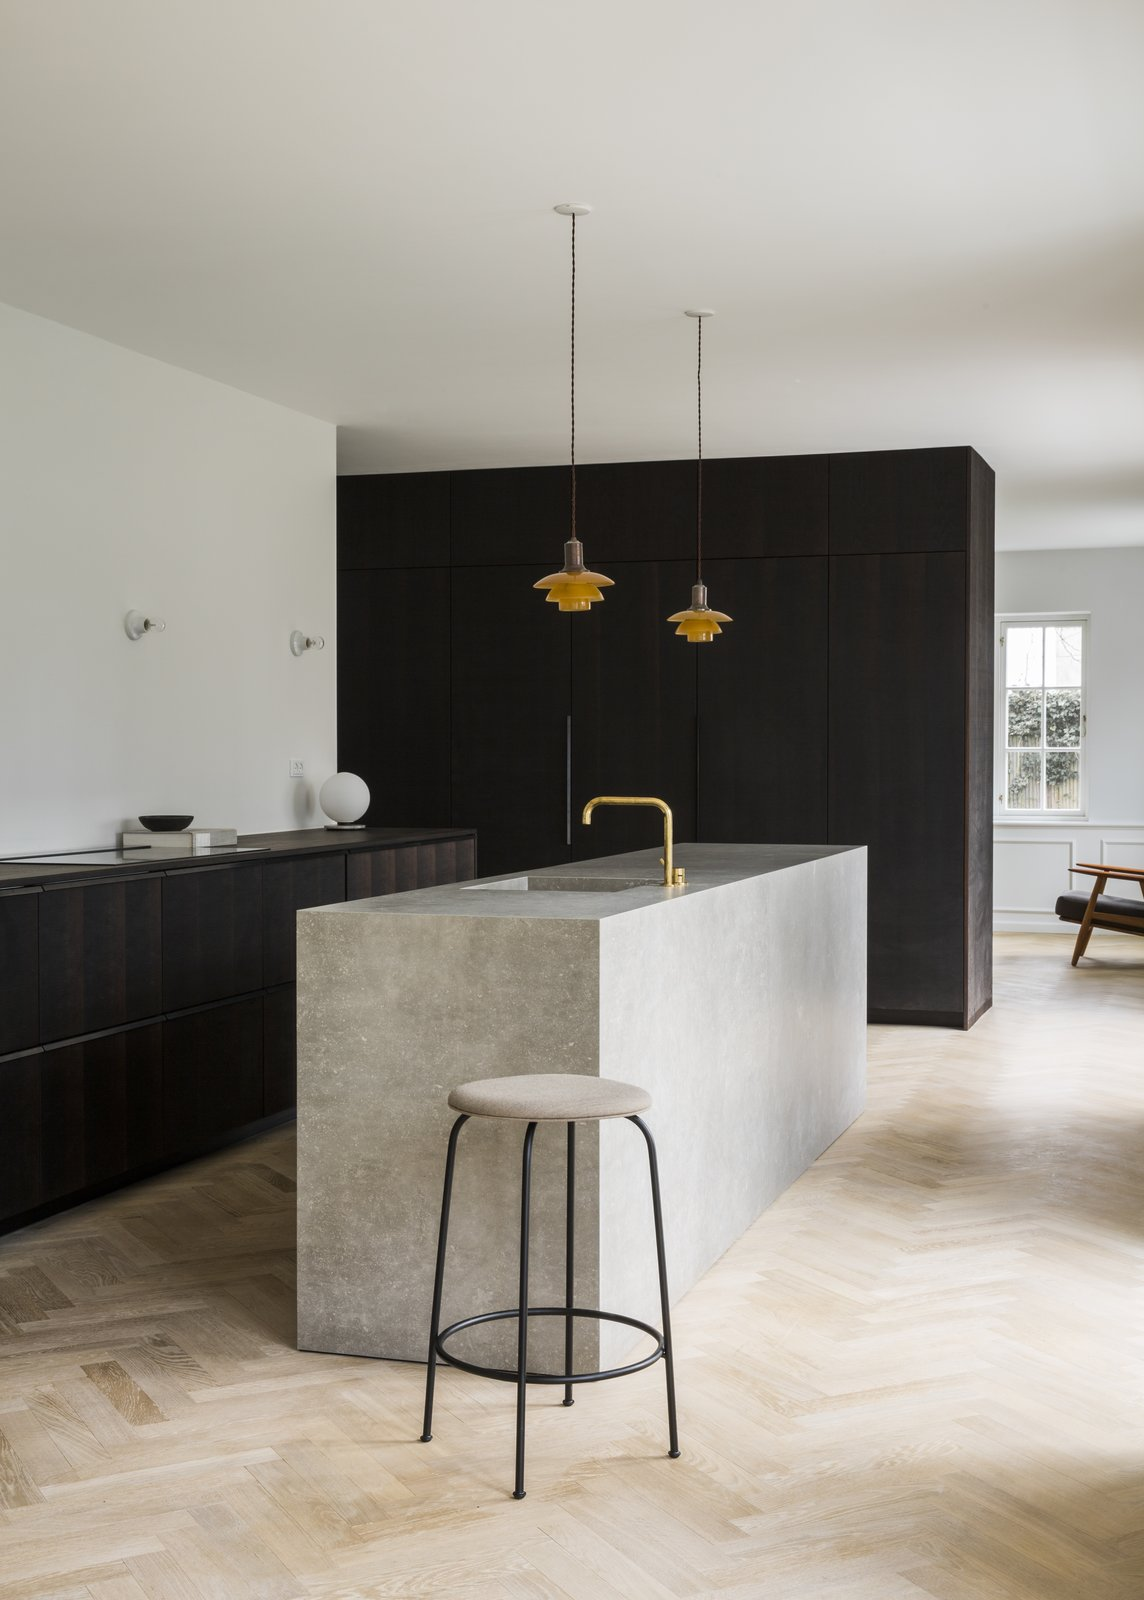 The Historic Villa Once Home to Poul Henningsen Receives a Modern Renovation